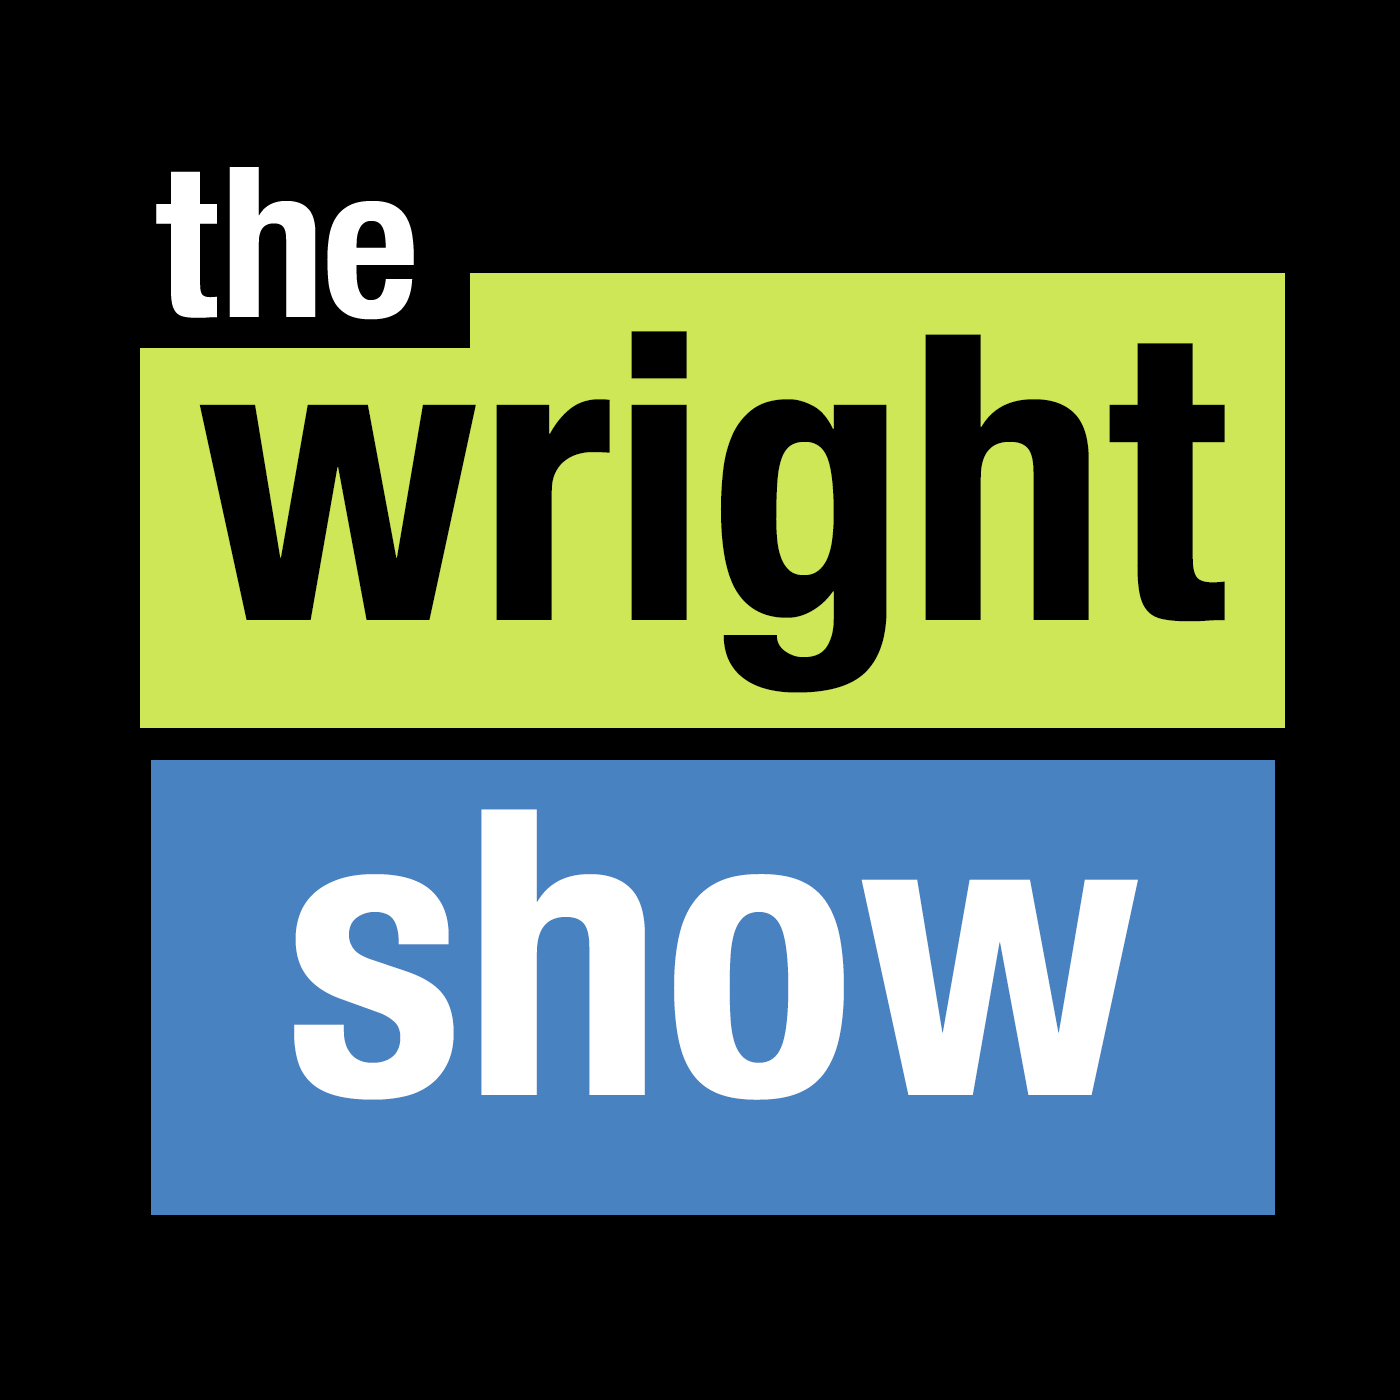 BhTV: The Wright Show (fast audio)